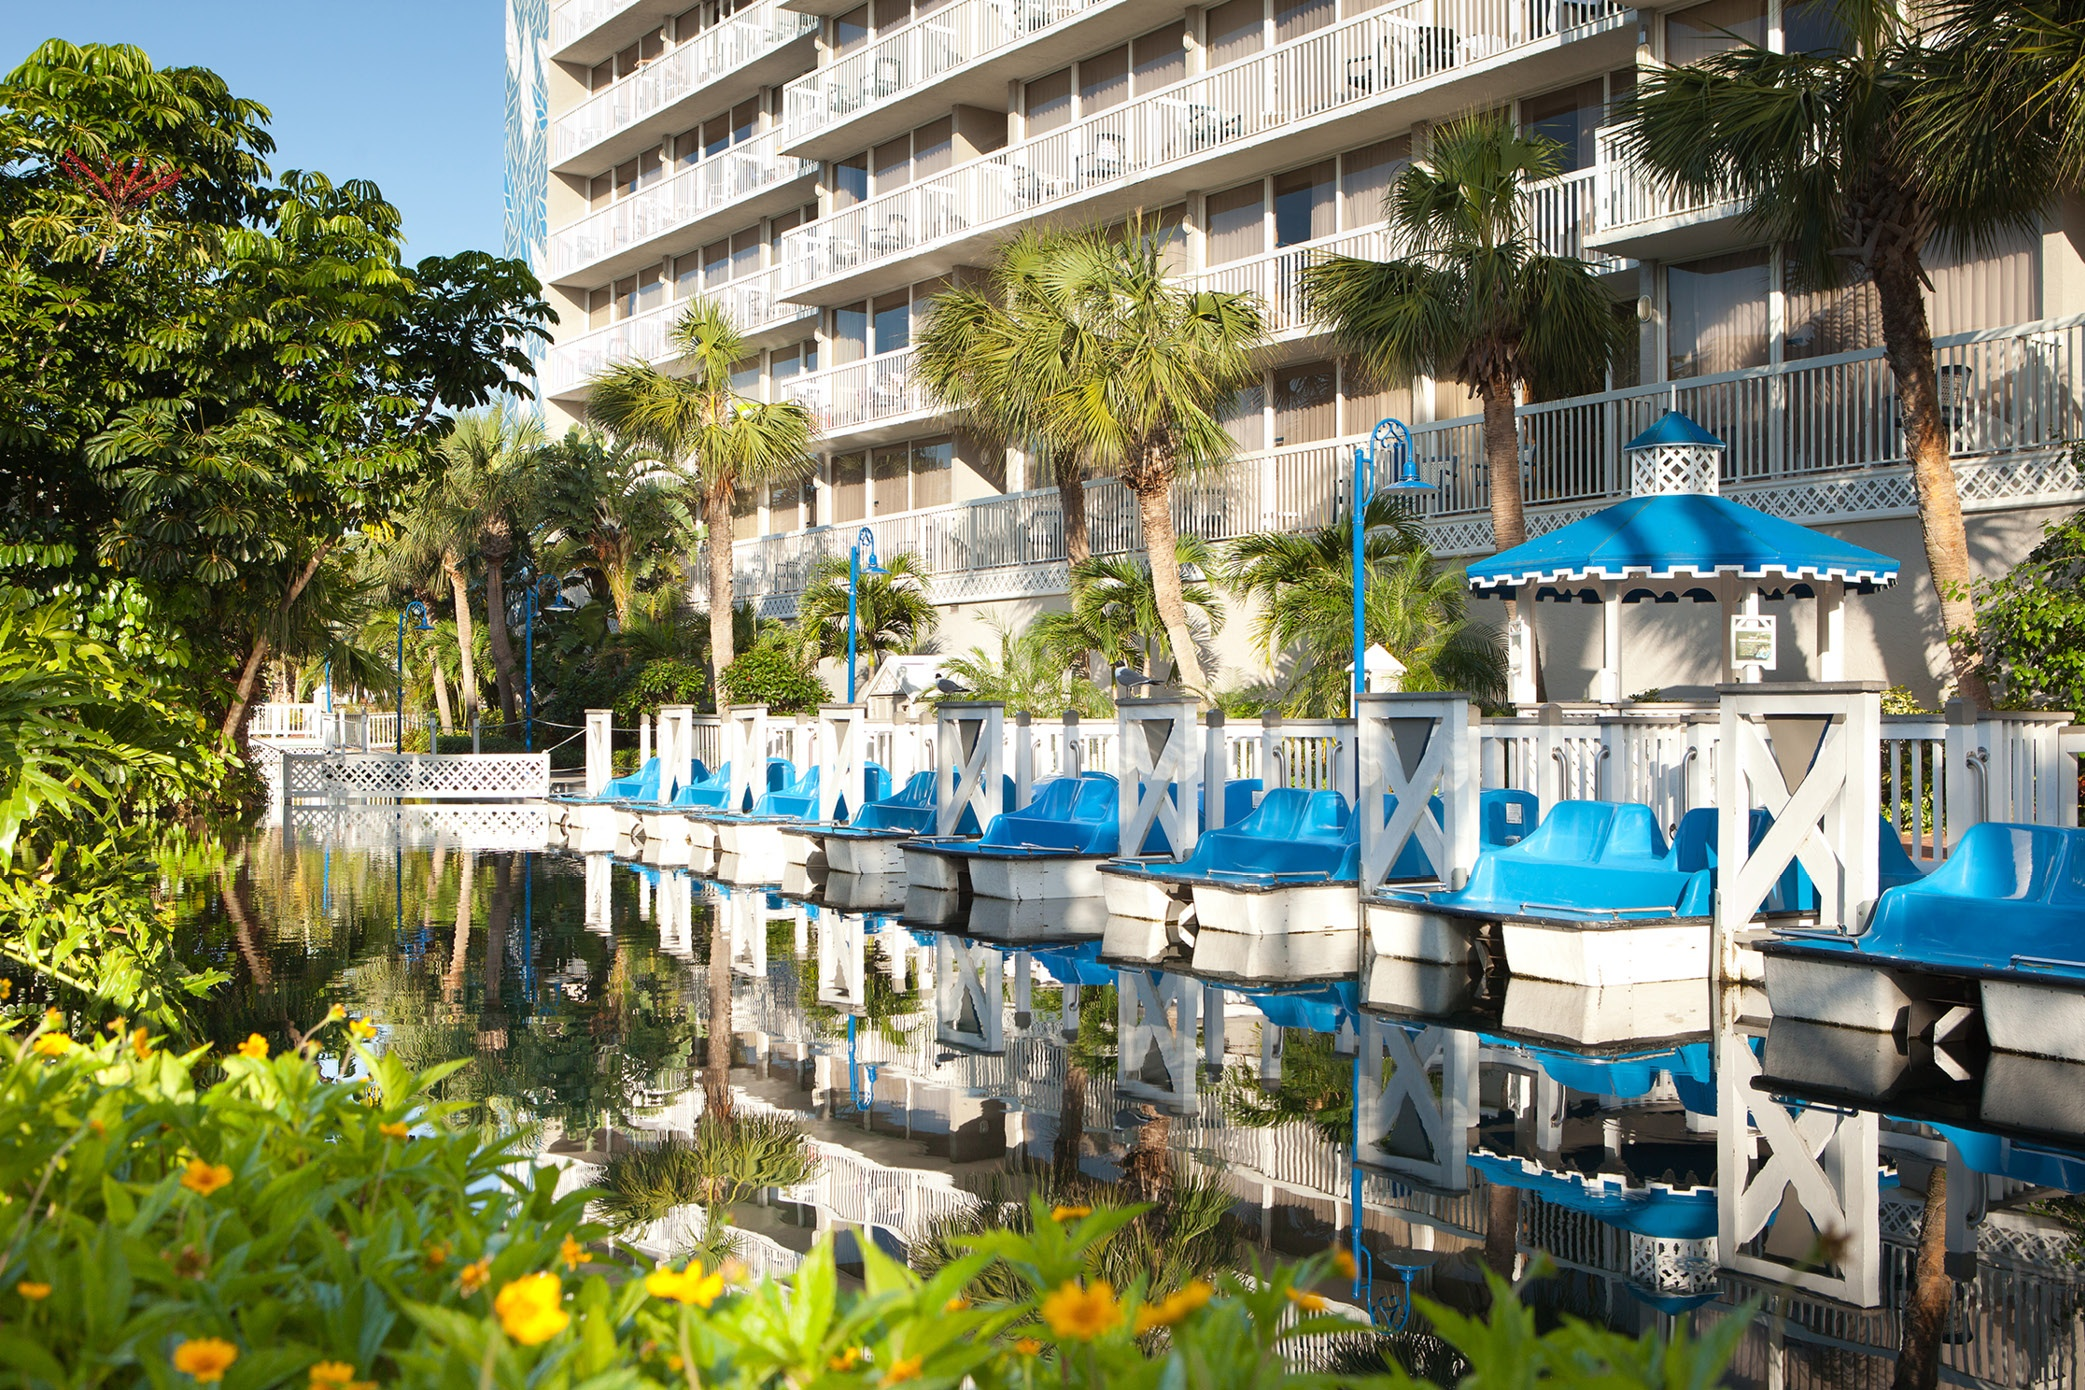 Top Tampa Bay Staycations Ideas